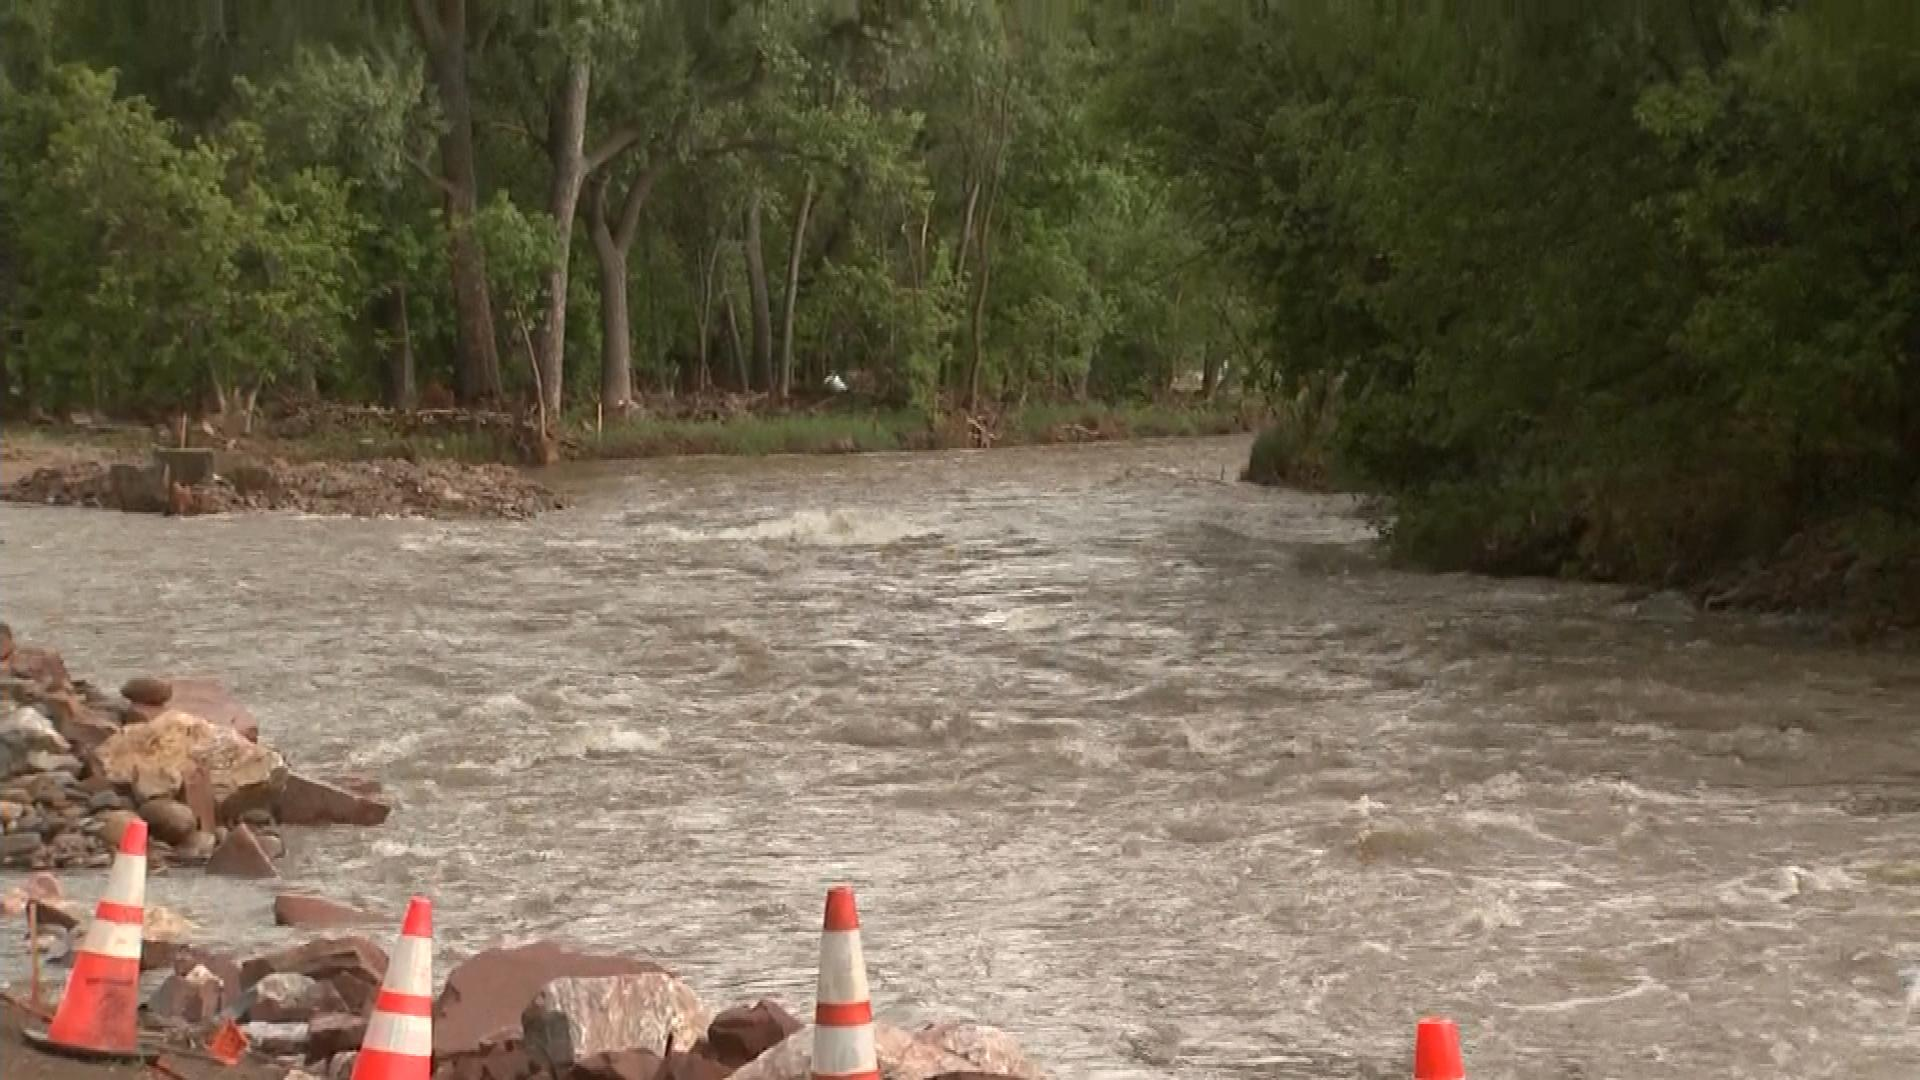 Boulder Creek in Lyons on Friday (credit: CBS)